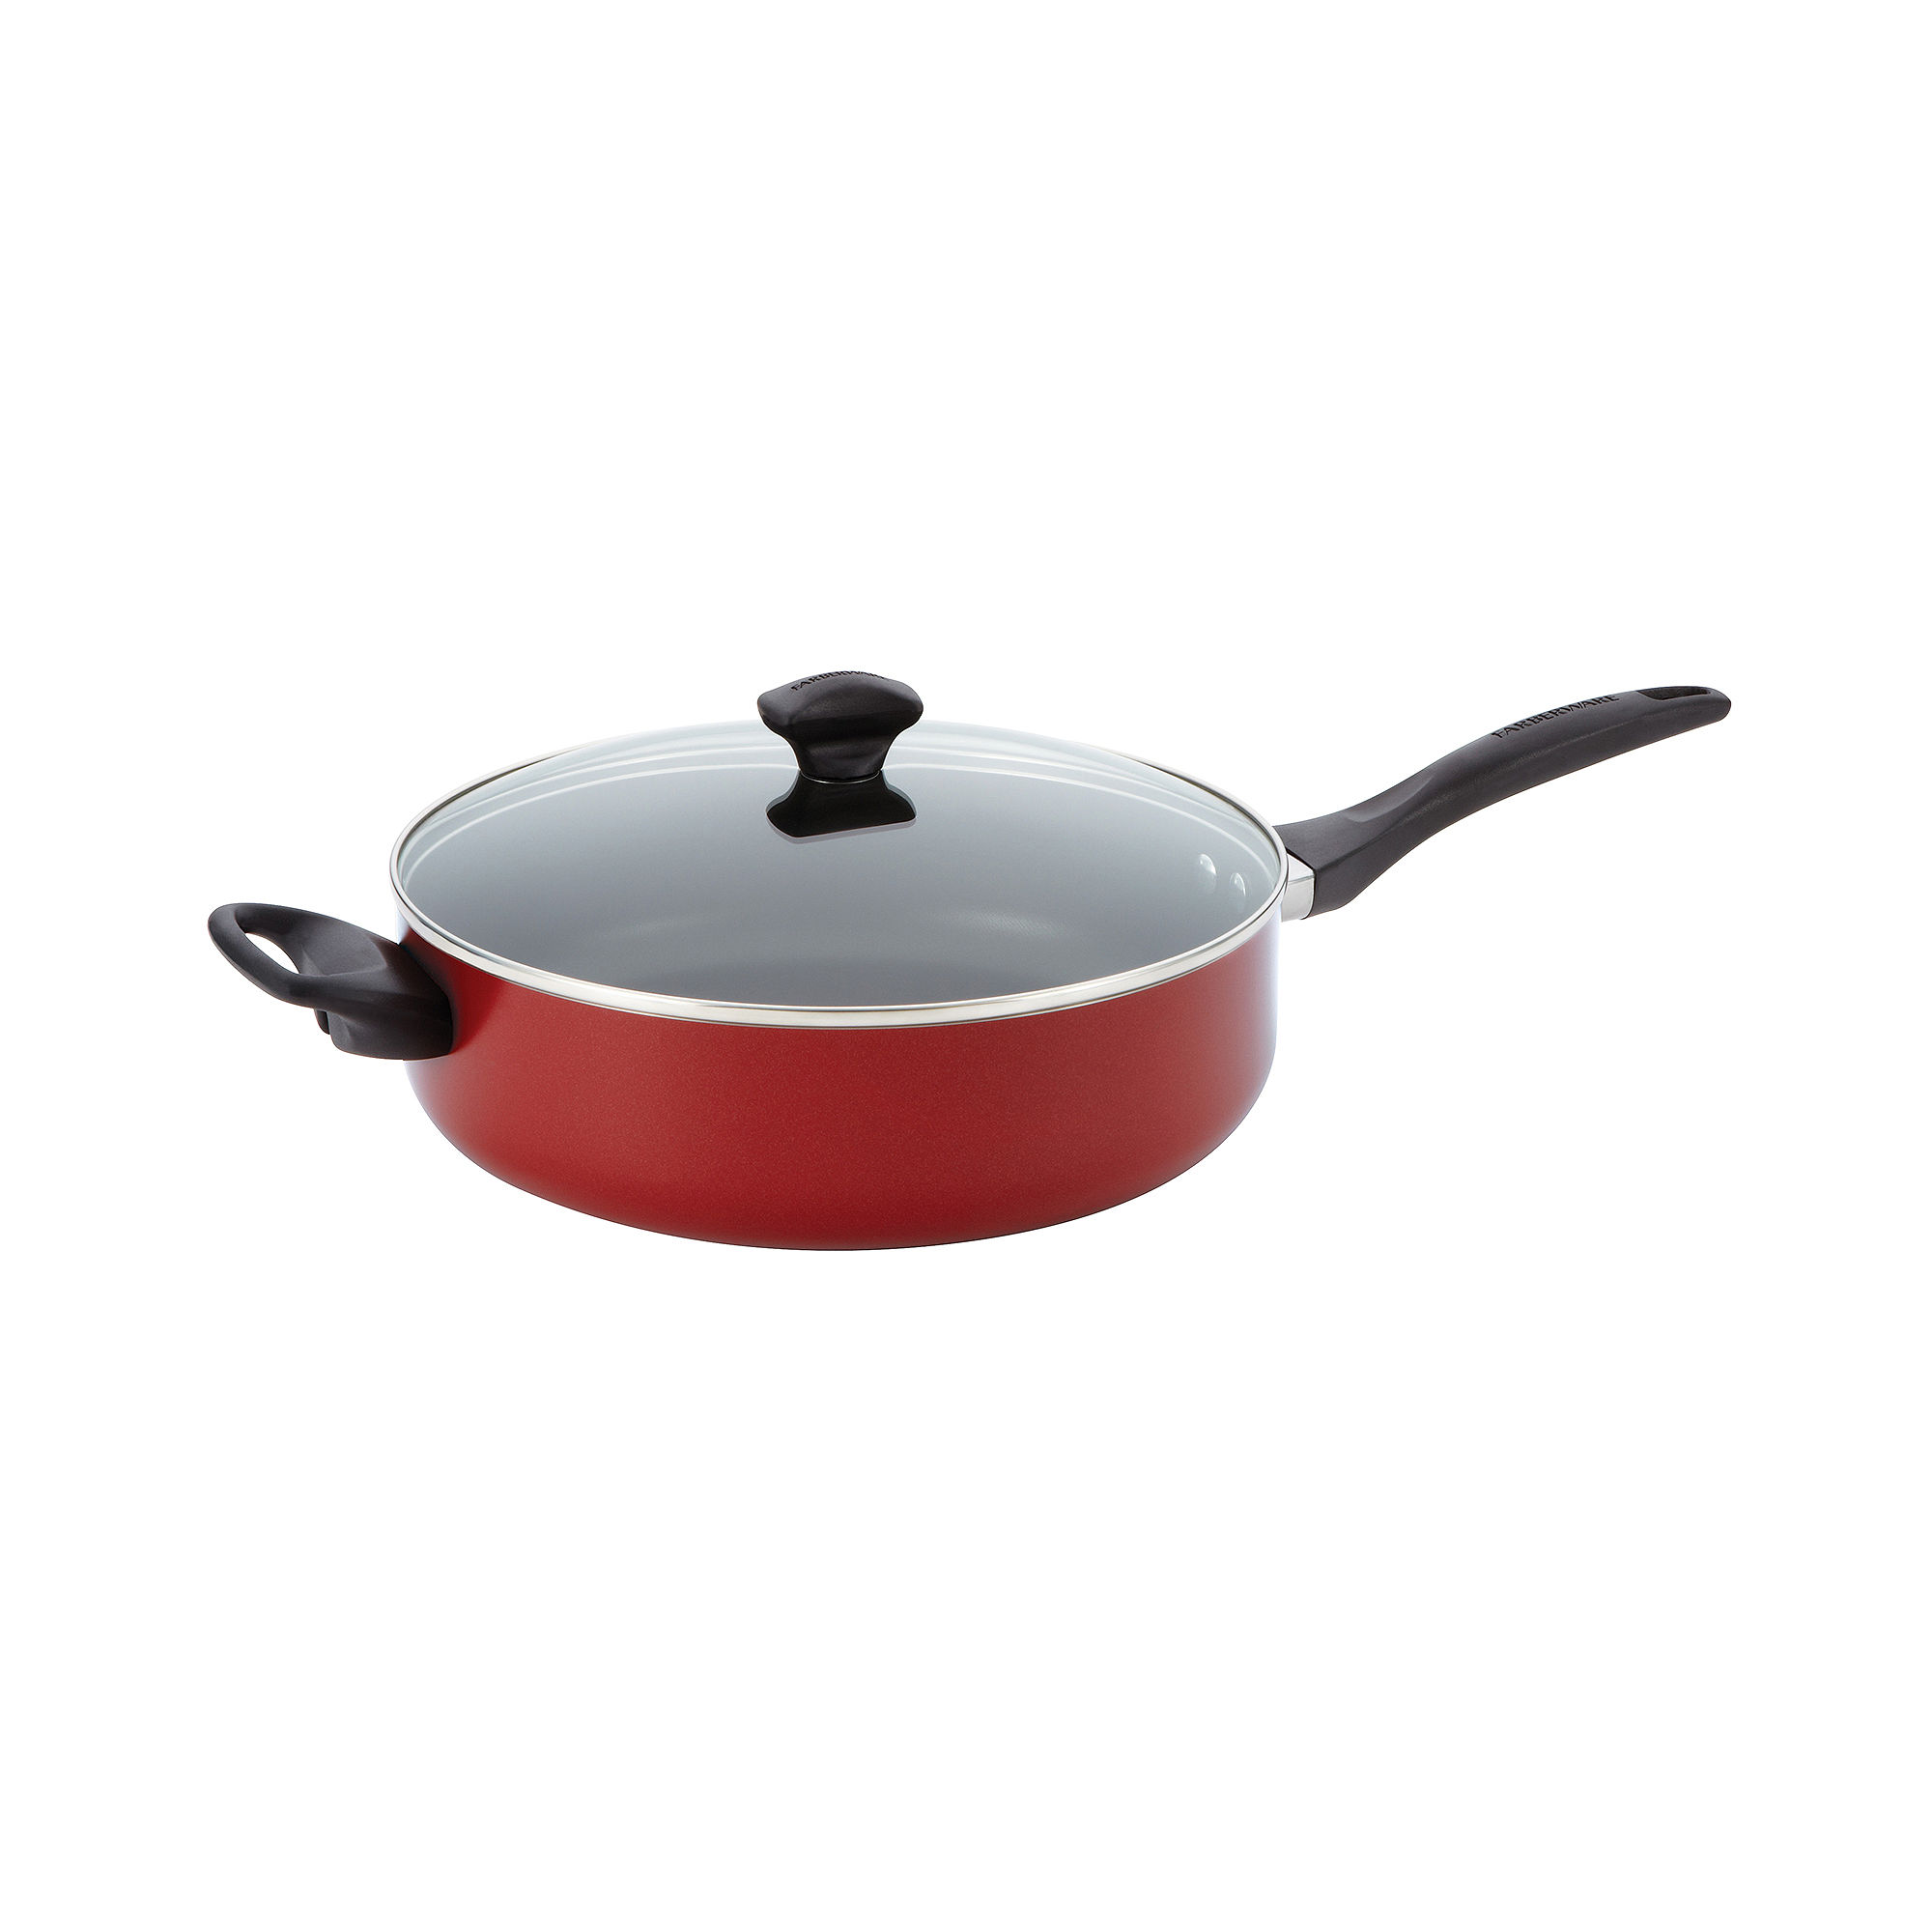 Farberware 5-qt. Dishwasher-Safe Nonstick Jumbo Cooker with Lid